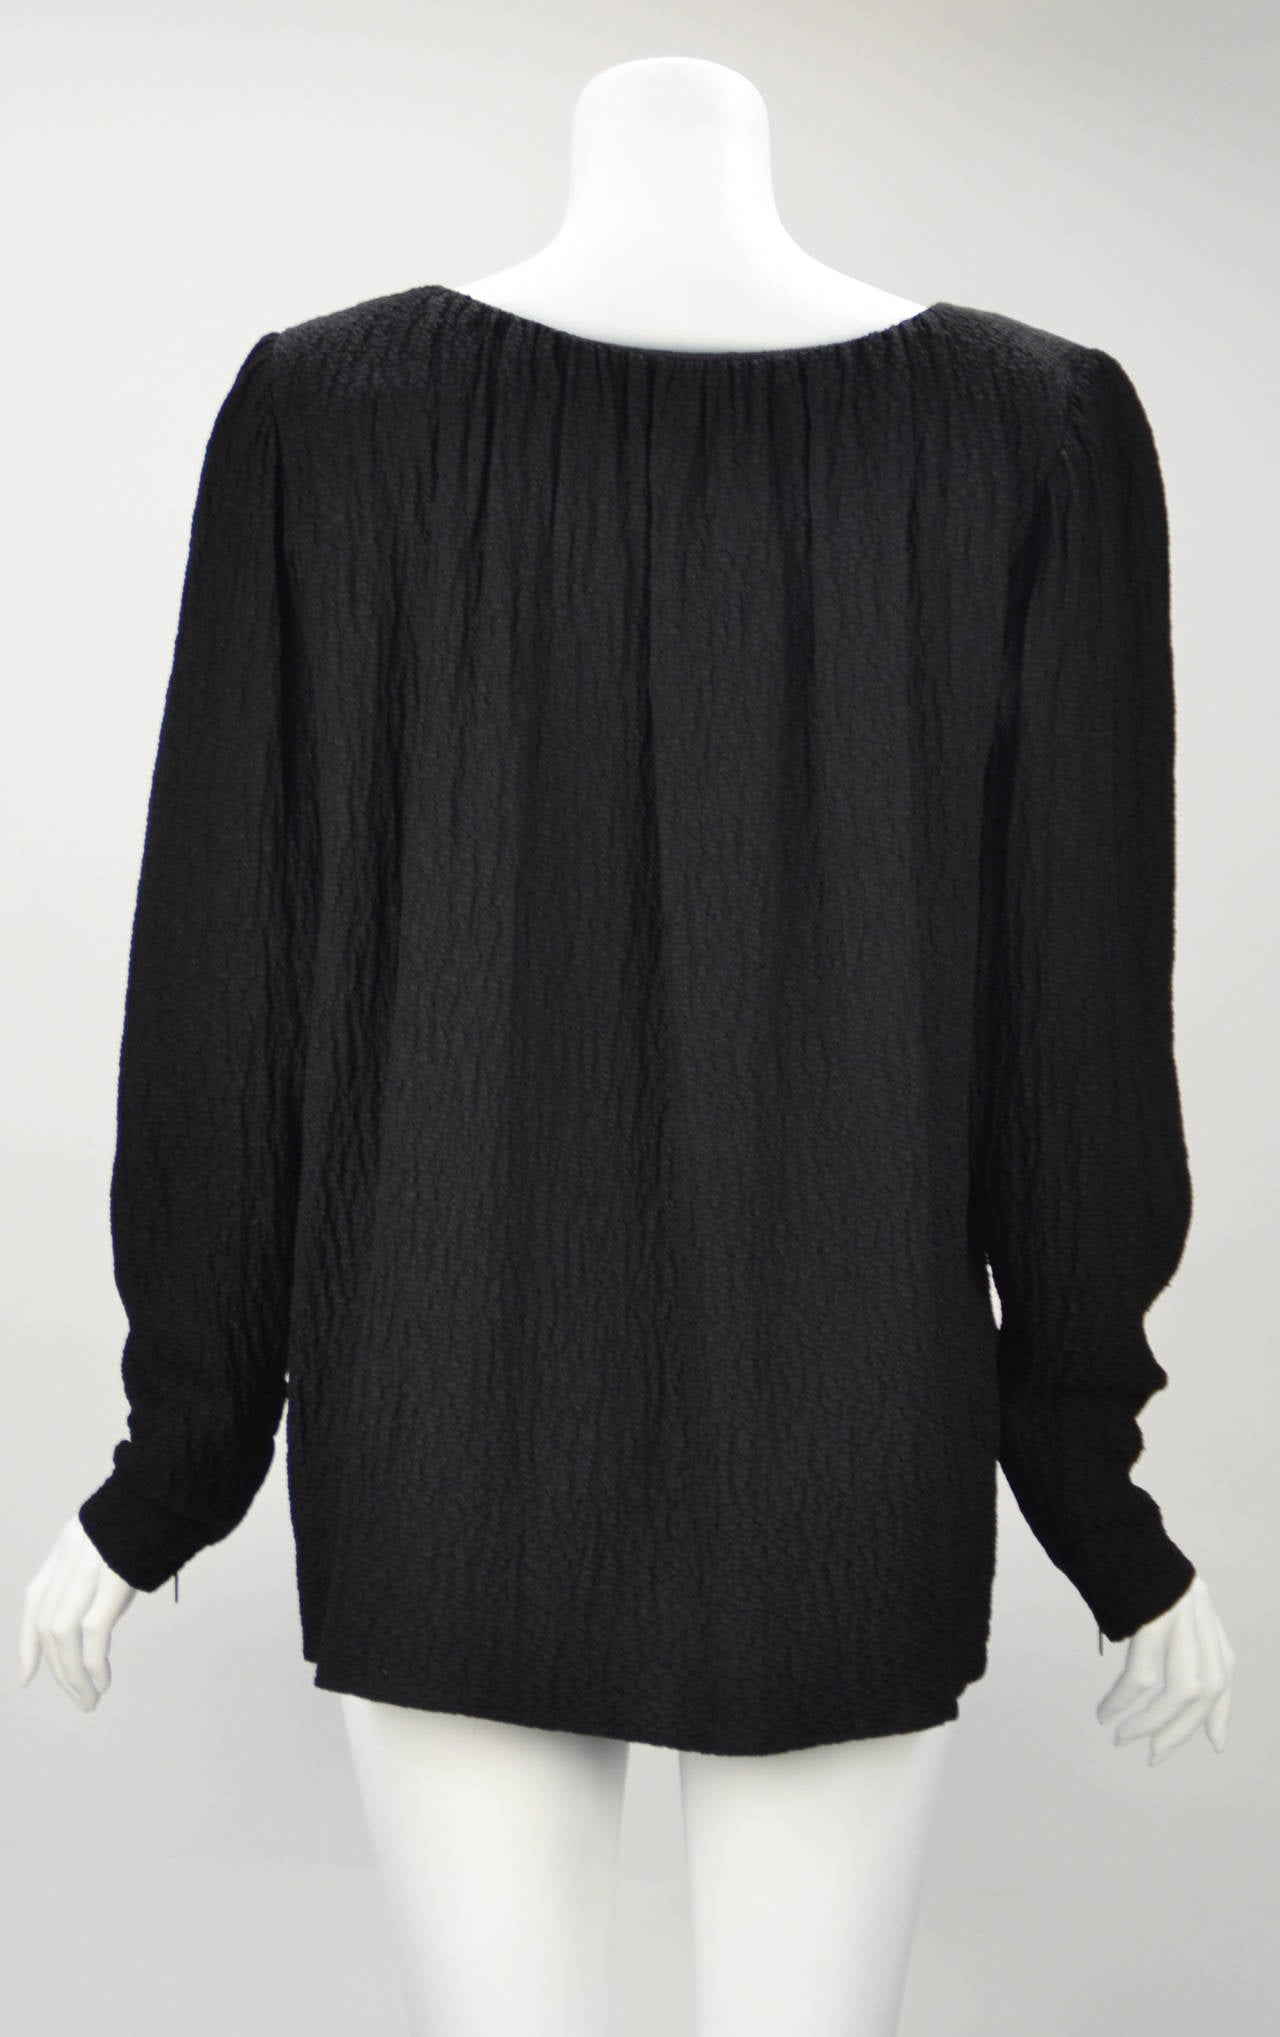 Timeless and beautiful, black crepe blouse with fitted zippered wrist at cuffs. Gathered neckline. Simply elegant and light weight.  Dress it up, dress it down... Wear it alone or under a vest, blazer or jacket....Winter, spring, summer, or fall...